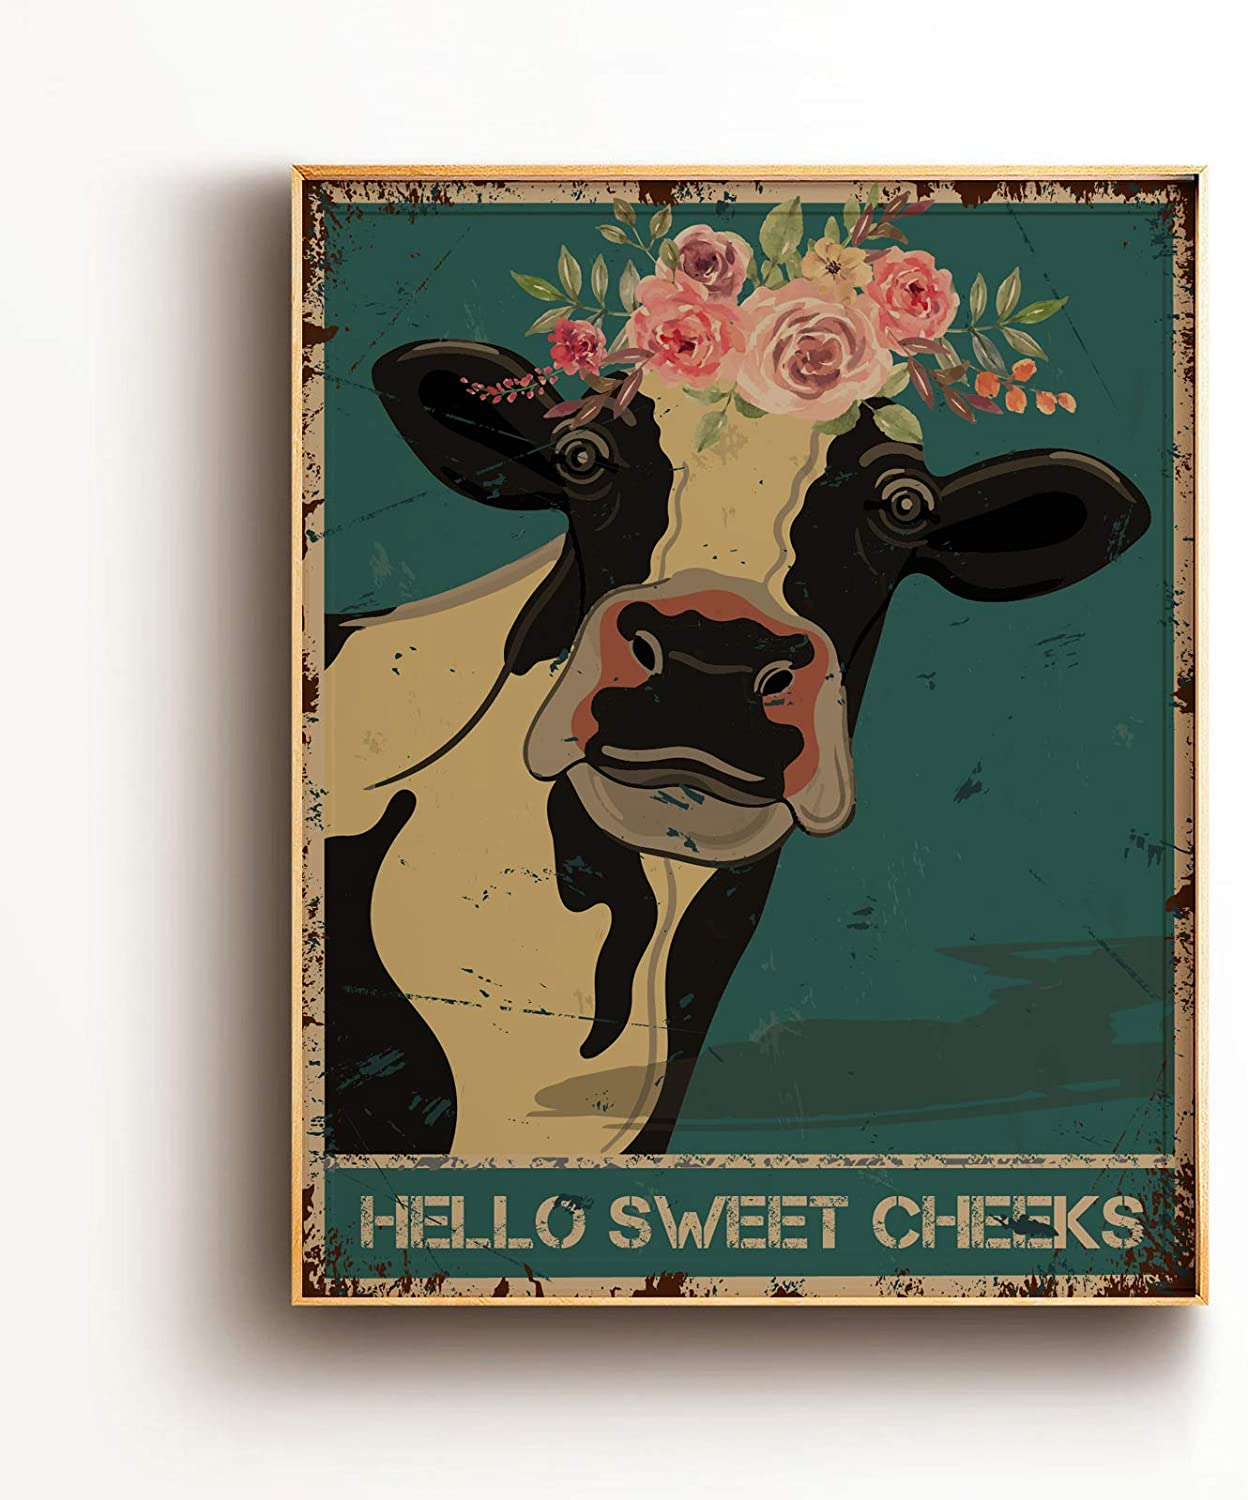 Funny Bathroom Quote Wall Art Print Poster Decor - Vintage Hello Sweet Cheeks Cow Poster for Office/Home/Classroom Decor Gifts - Best Farmhouse Decor Gift Ideas for Women Men Friends - 8x10 Unframed